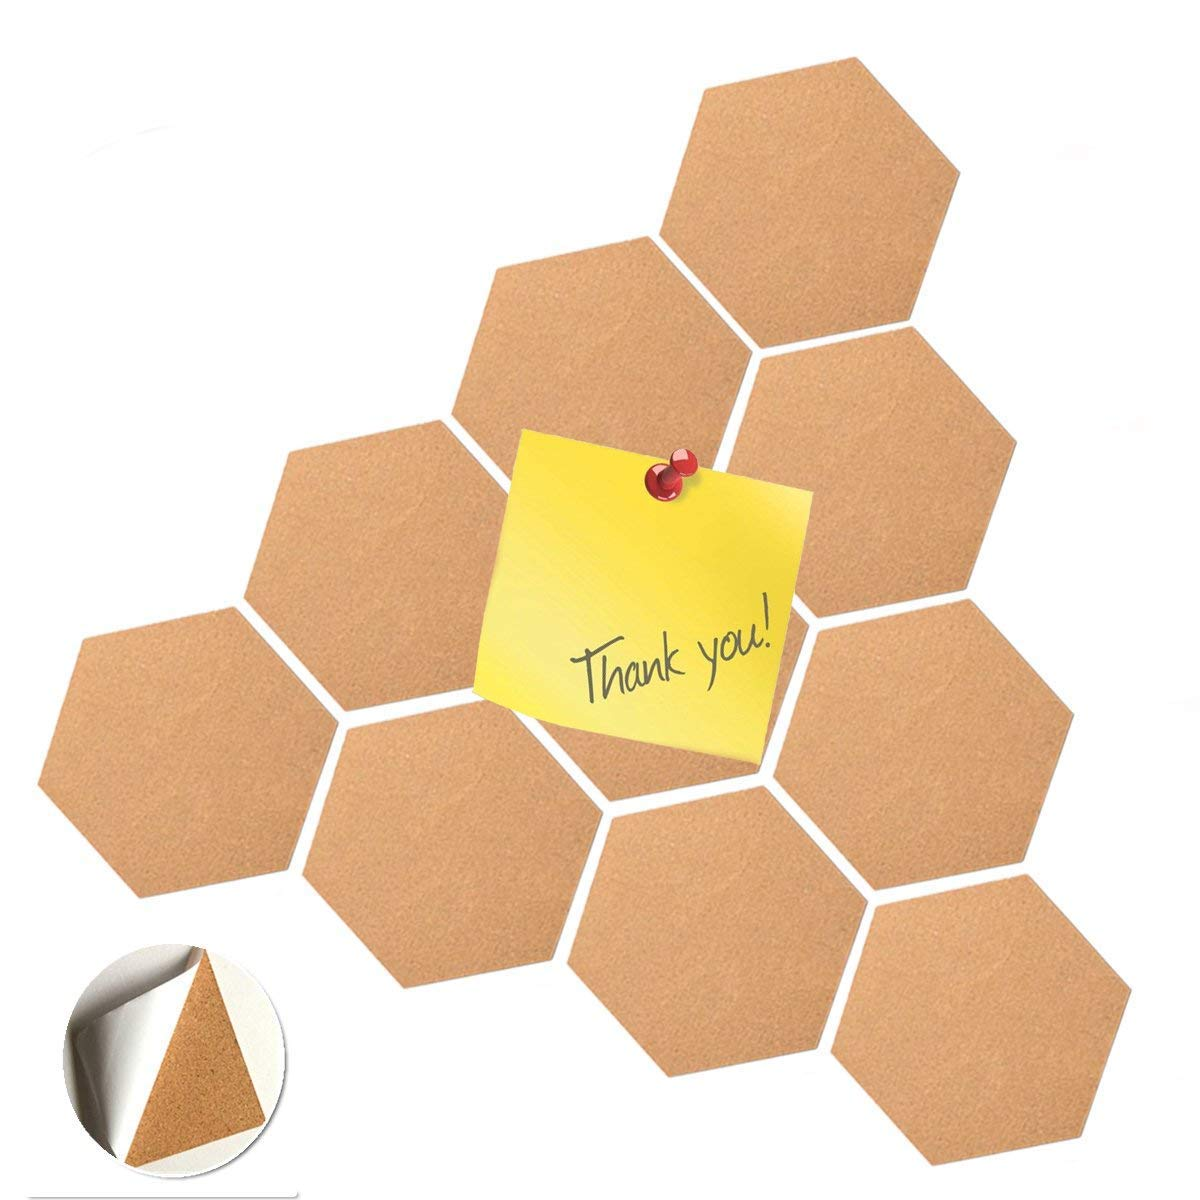 Amazon.com : 10 Pcs Hexagon Bulletin Cork Board Adhesive Wood Pins ...